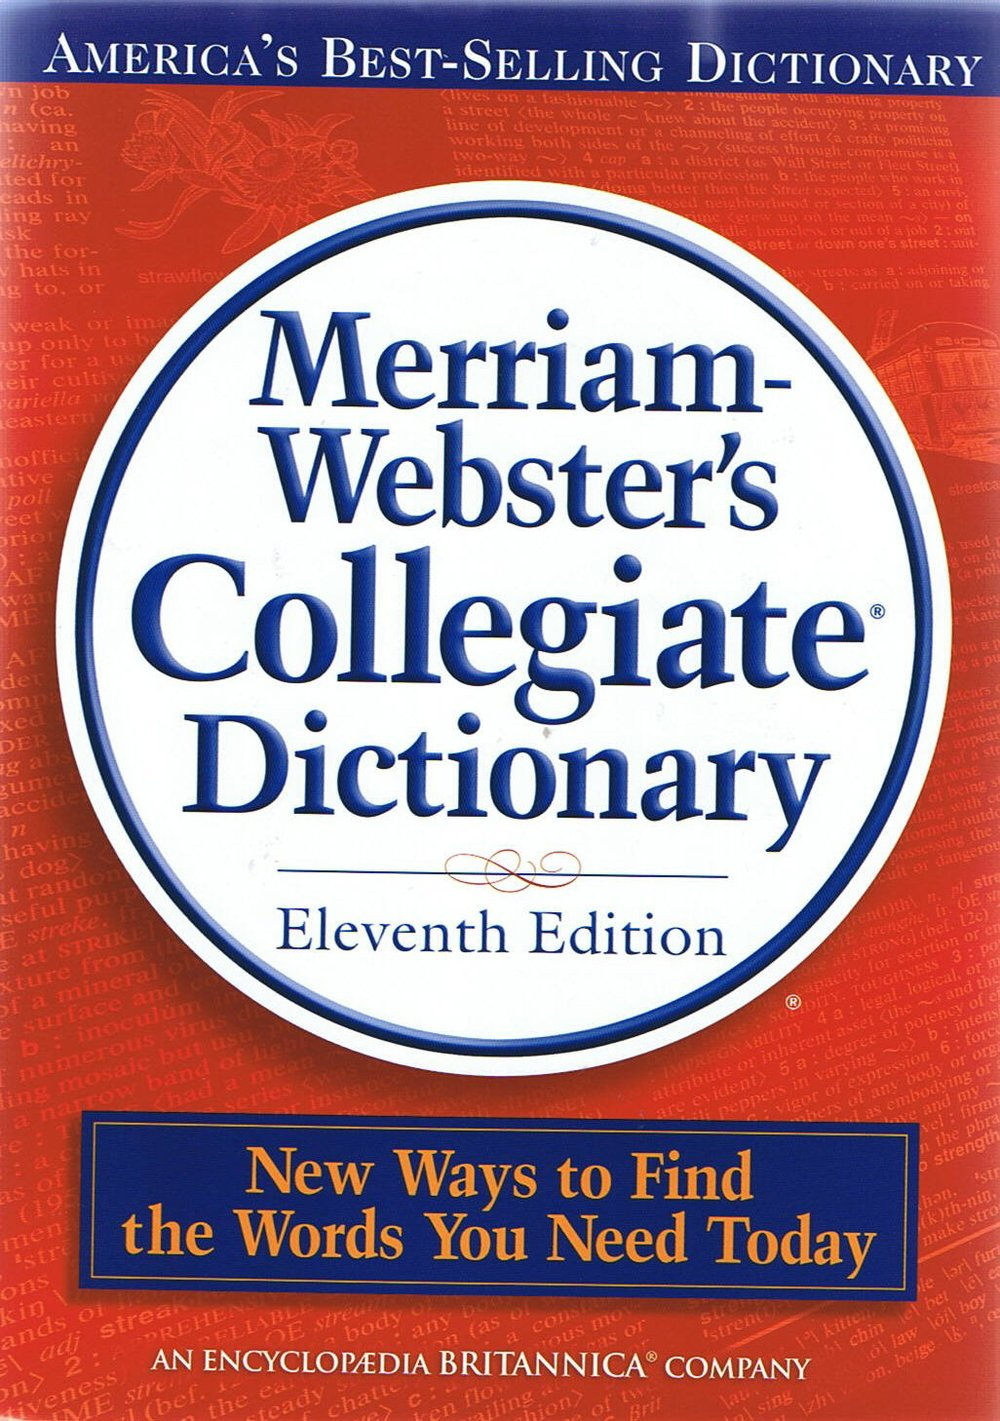 MerriamWebster.jpg